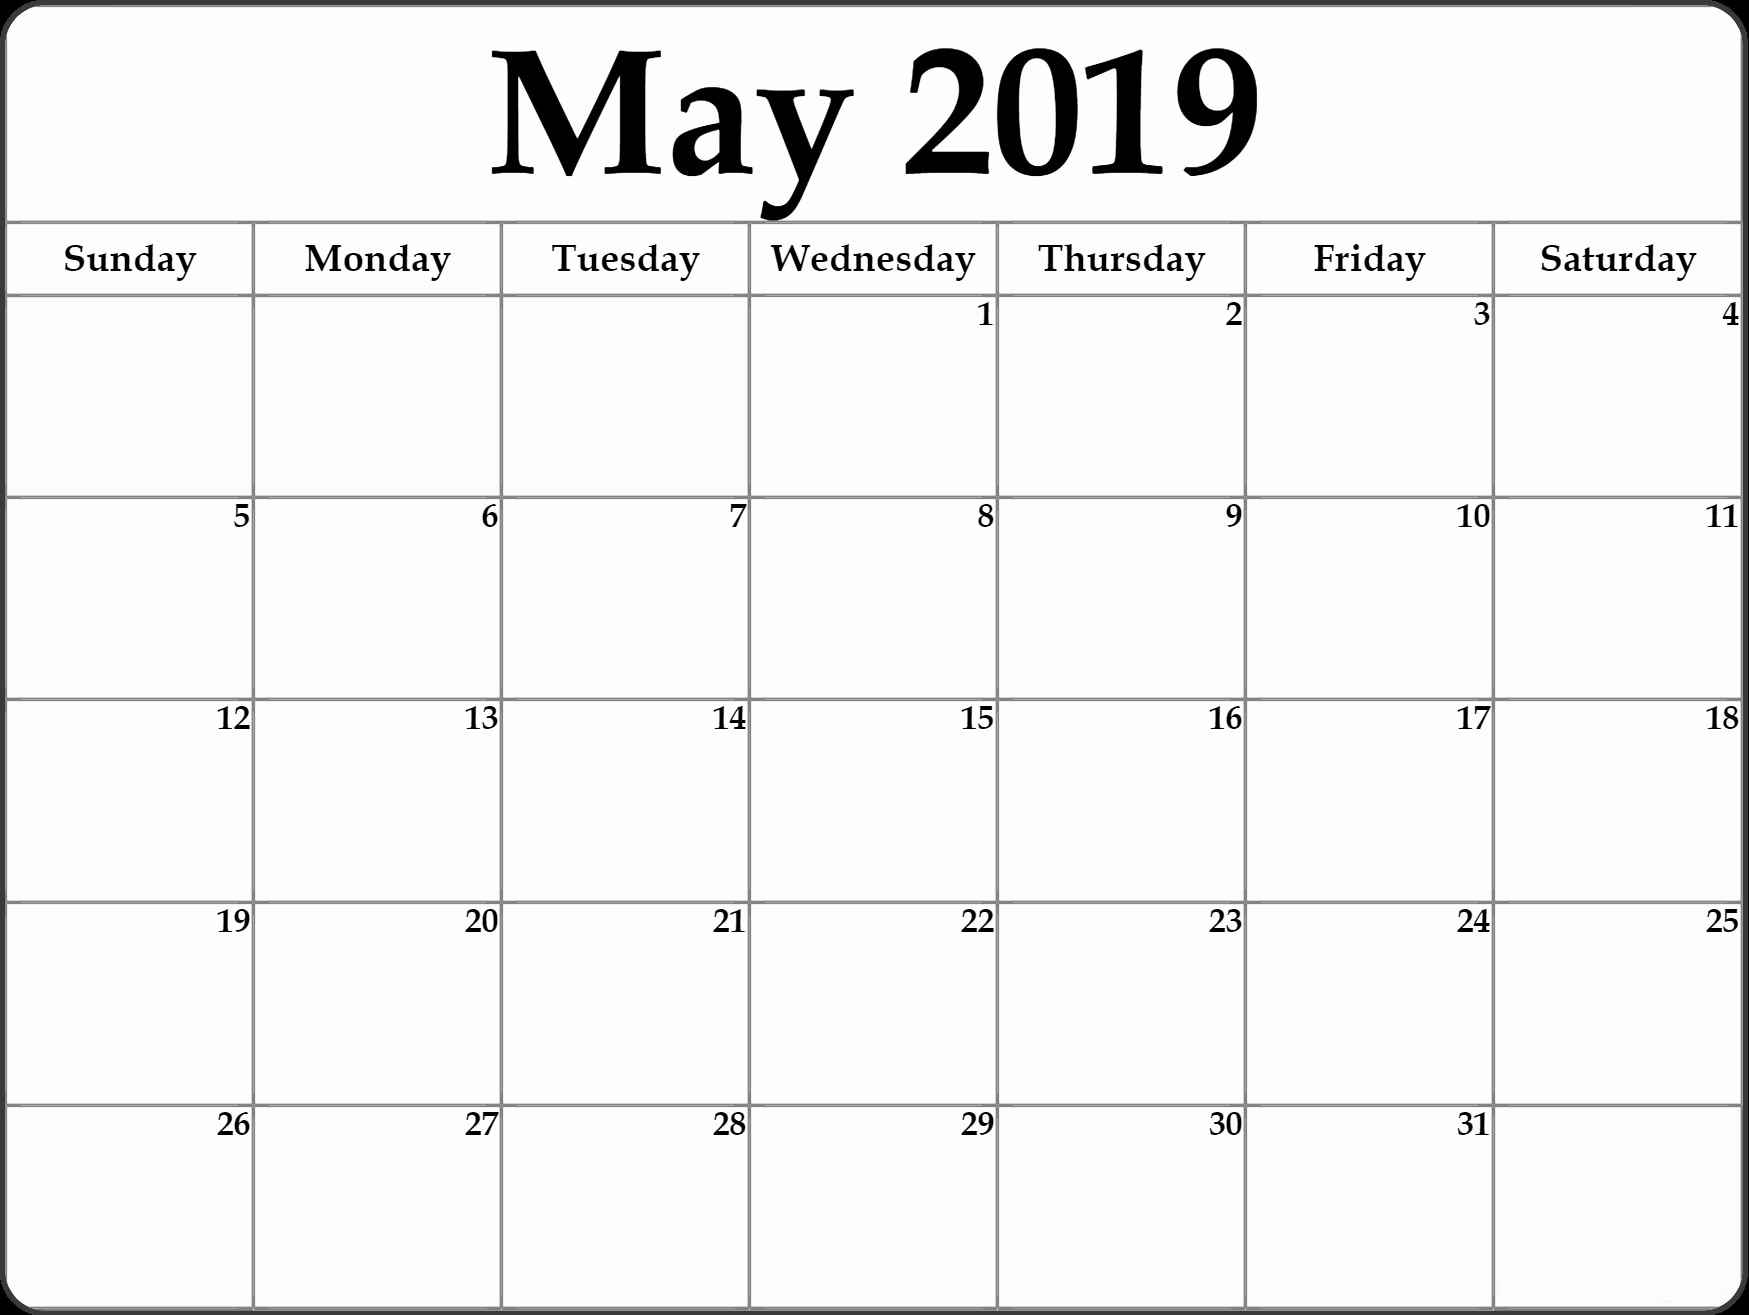 Blank Monthly Calendar Template Pdf Beautiful Blank May 2019 Calendar Template In Pdf format Free